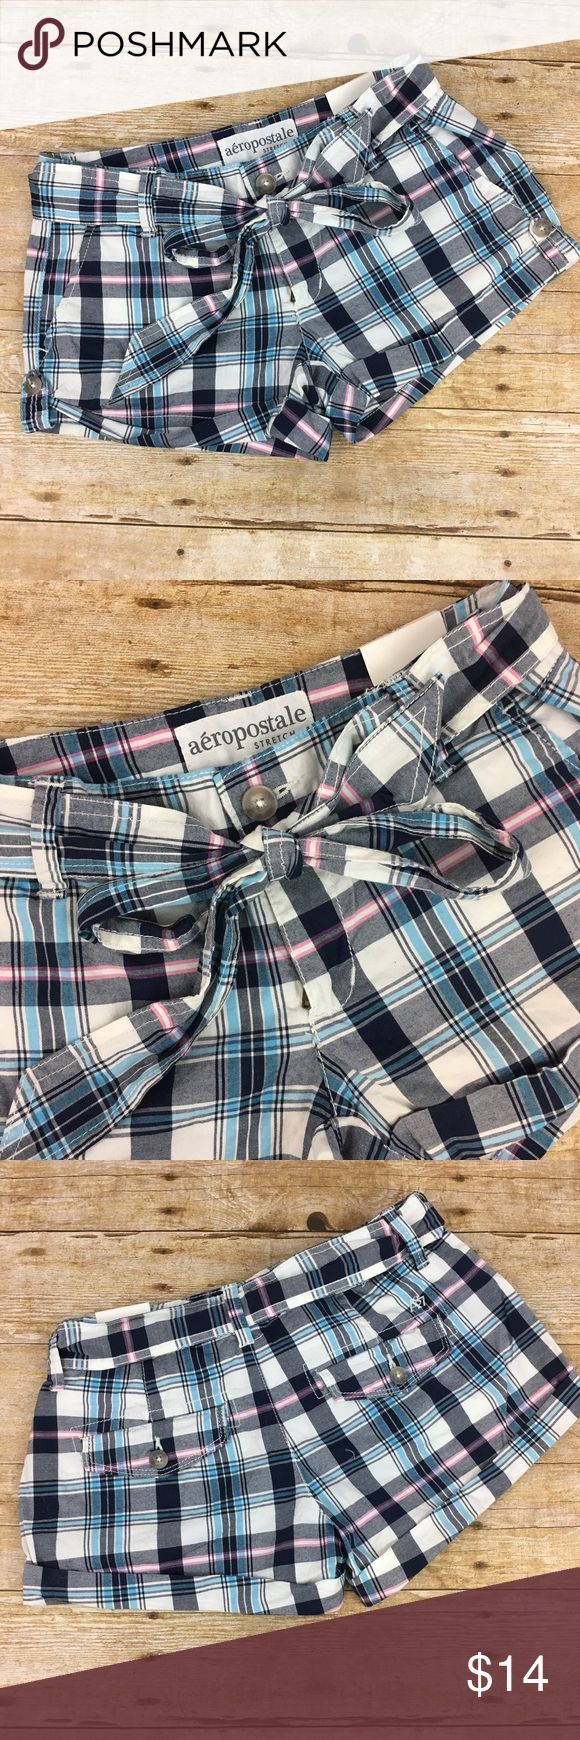 Aéropostale plaid stretch shorts with tie belt 3/4 Aéropostale plaid stretch shorts with tie belt. Navy, ligh bkue, pink and white.  About a 29 inch waist, 9 inches long, 2.5 inseam, 7 inch rise. Aeropostale Shorts